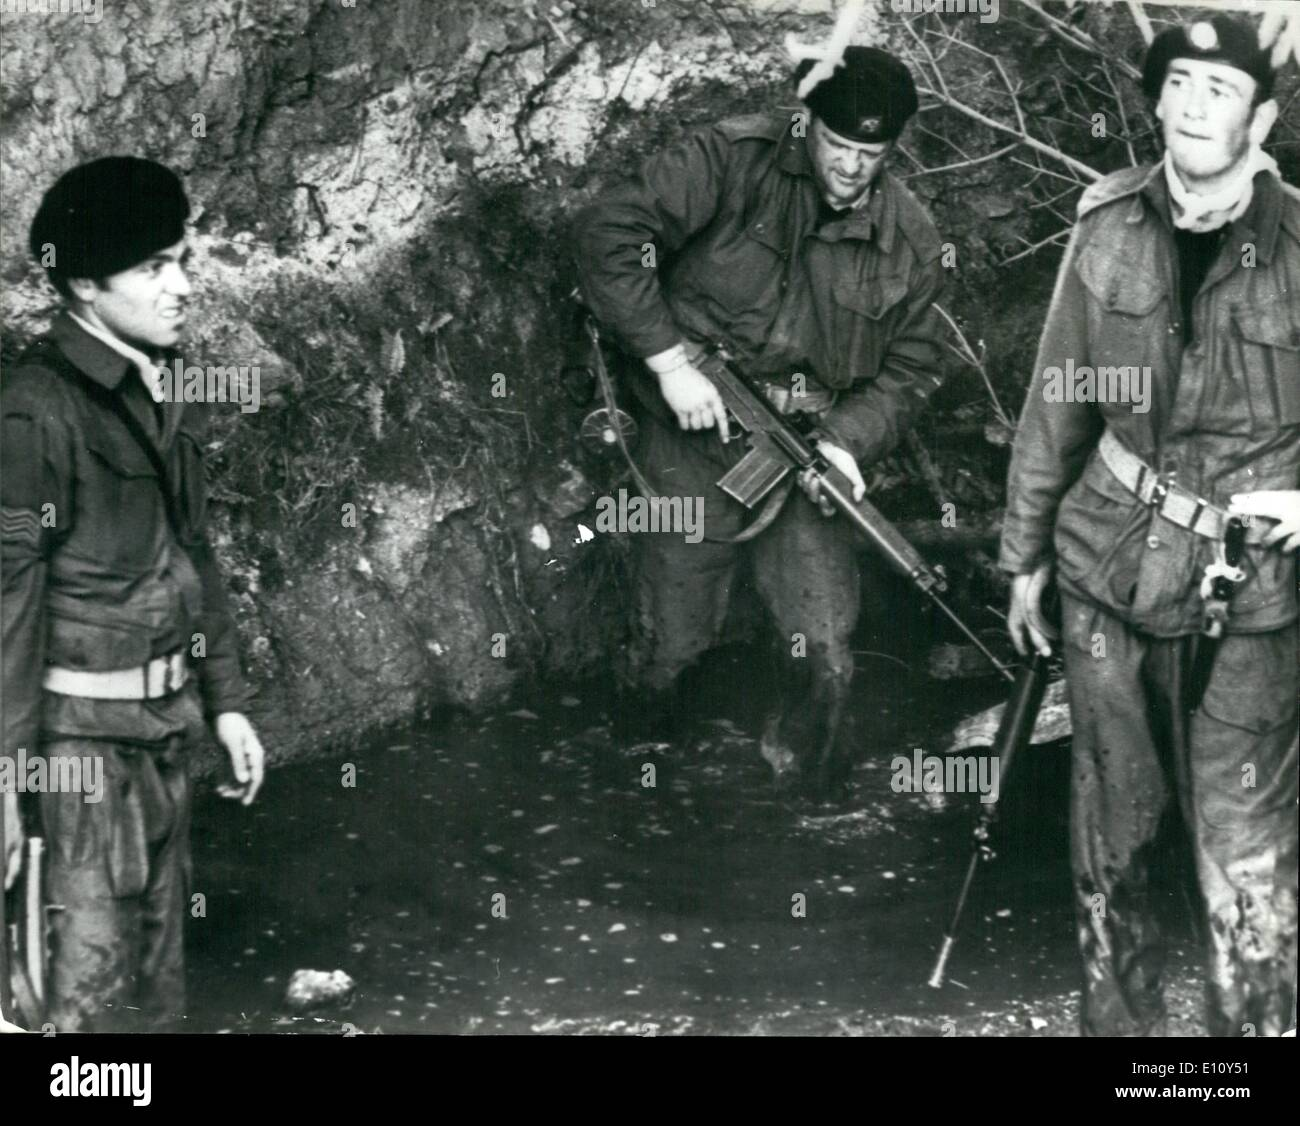 Aug. 08, 1974 - Hunt for IRA escapers: Hundreds of police and soldiers were last night carrying out an intensive hunt for the IRA men who escaped from Eire's Portlaoise Jail on Sunday. Six of the 19 men who escaped left behind a trail of terror as they fled from the man-hunt. Two policemen who spotted the men in a wood outside the village of Courtown in Co. Wexford, were overpowered and tied up,then they raided a holiday bungalow at Ballymoney, five miles away. Photo shows soldiers forage through thick undergrowth and a water-filled ditch. during yesterday's hunt for the escapees. - Stock Image